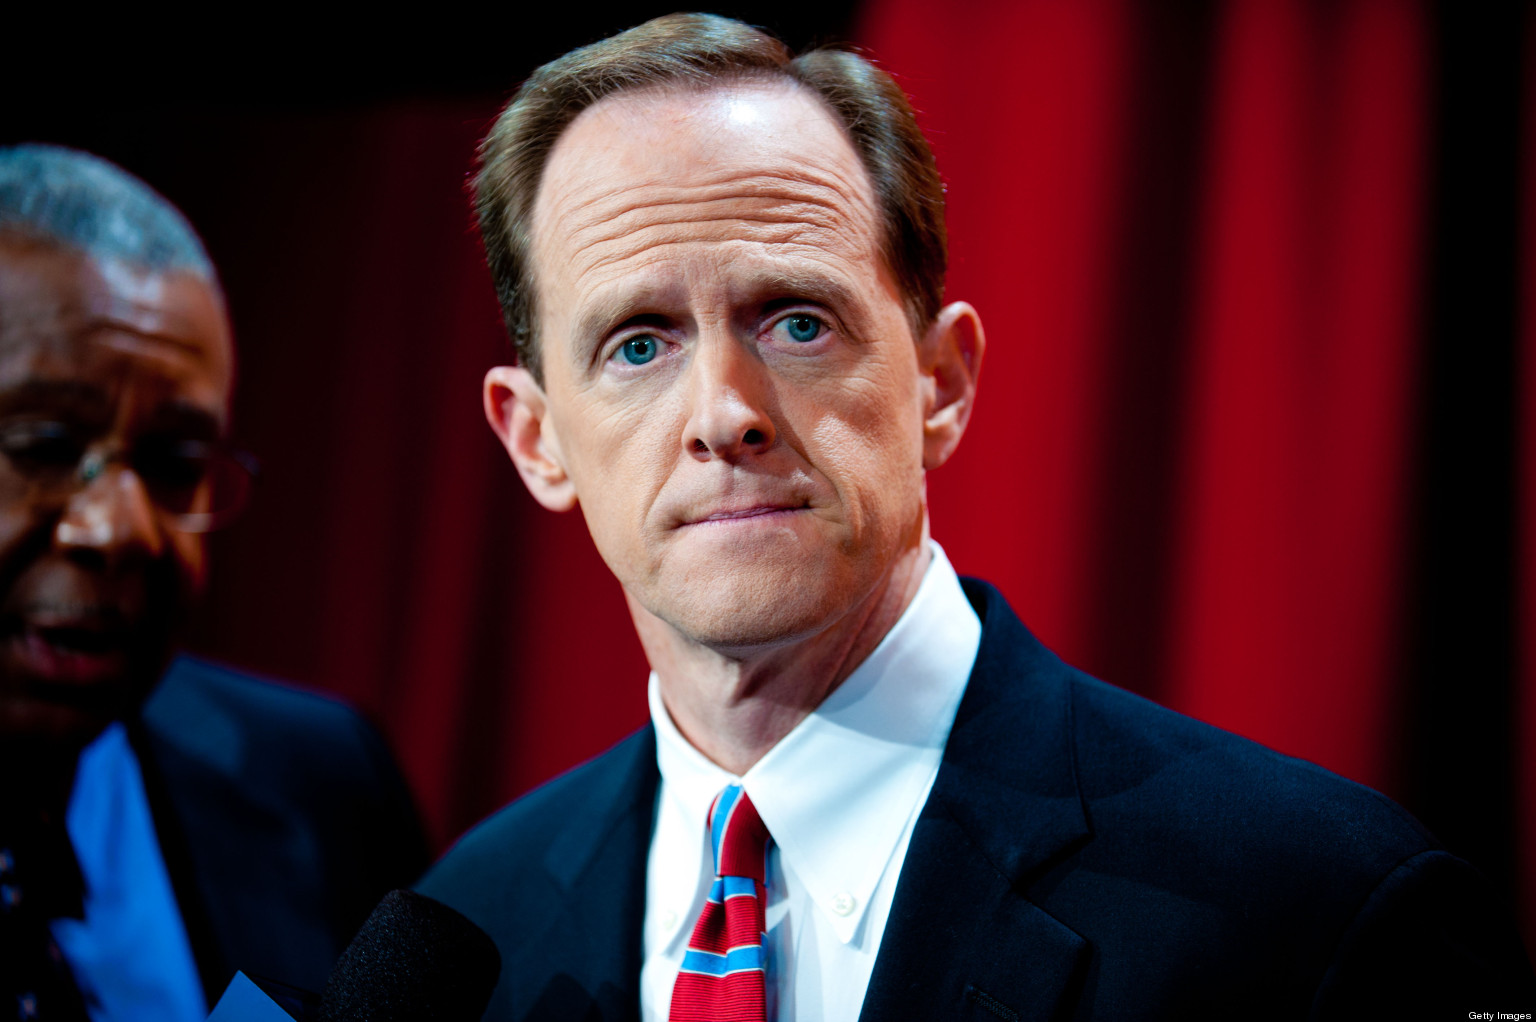 PHILADELPHIA, PA - OCTOBER 20: U.S. Senate Republican candidate Pat Toomey meets with the media after his debate with U.S. Senate Democratic candidate Congressman Joe Sestak (D-PA ) at the National Constitution Center on October 20, 2010 in Philadelphia, Pennsylvania. Recent Polls have the two candidates neck and neck with two weeks to Election Day. (Photo by Jeff Fusco/Getty Images)